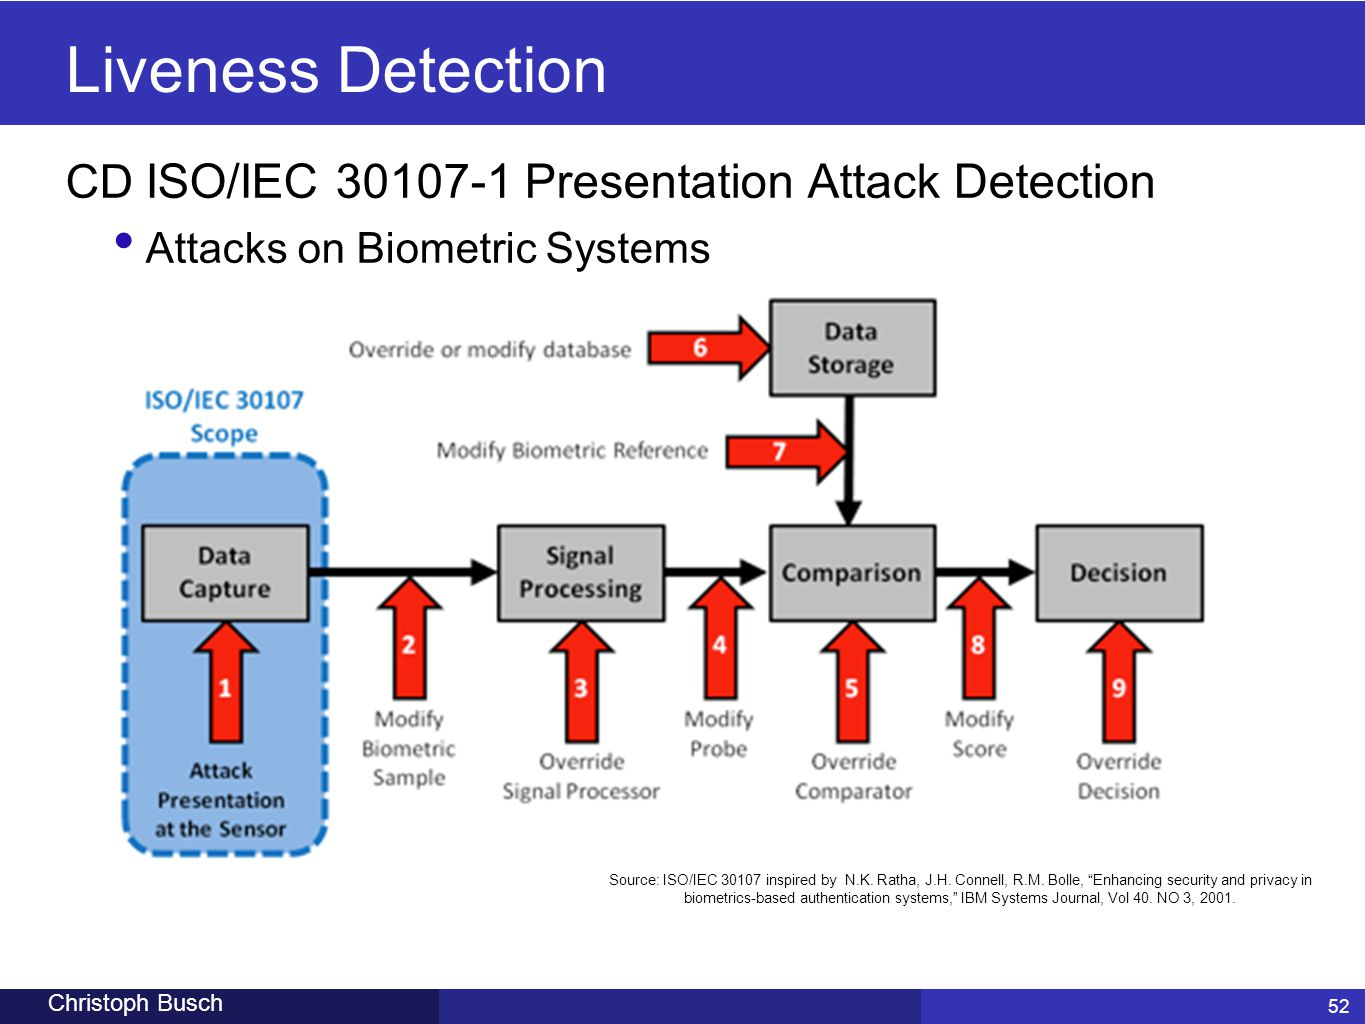 52 Christoph Busch Liveness Detection 52 CD ISO/IEC 30107-1 Presentation Attack Detection Attacks on Biometric Systems Source: ISO/IEC 30107 inspired